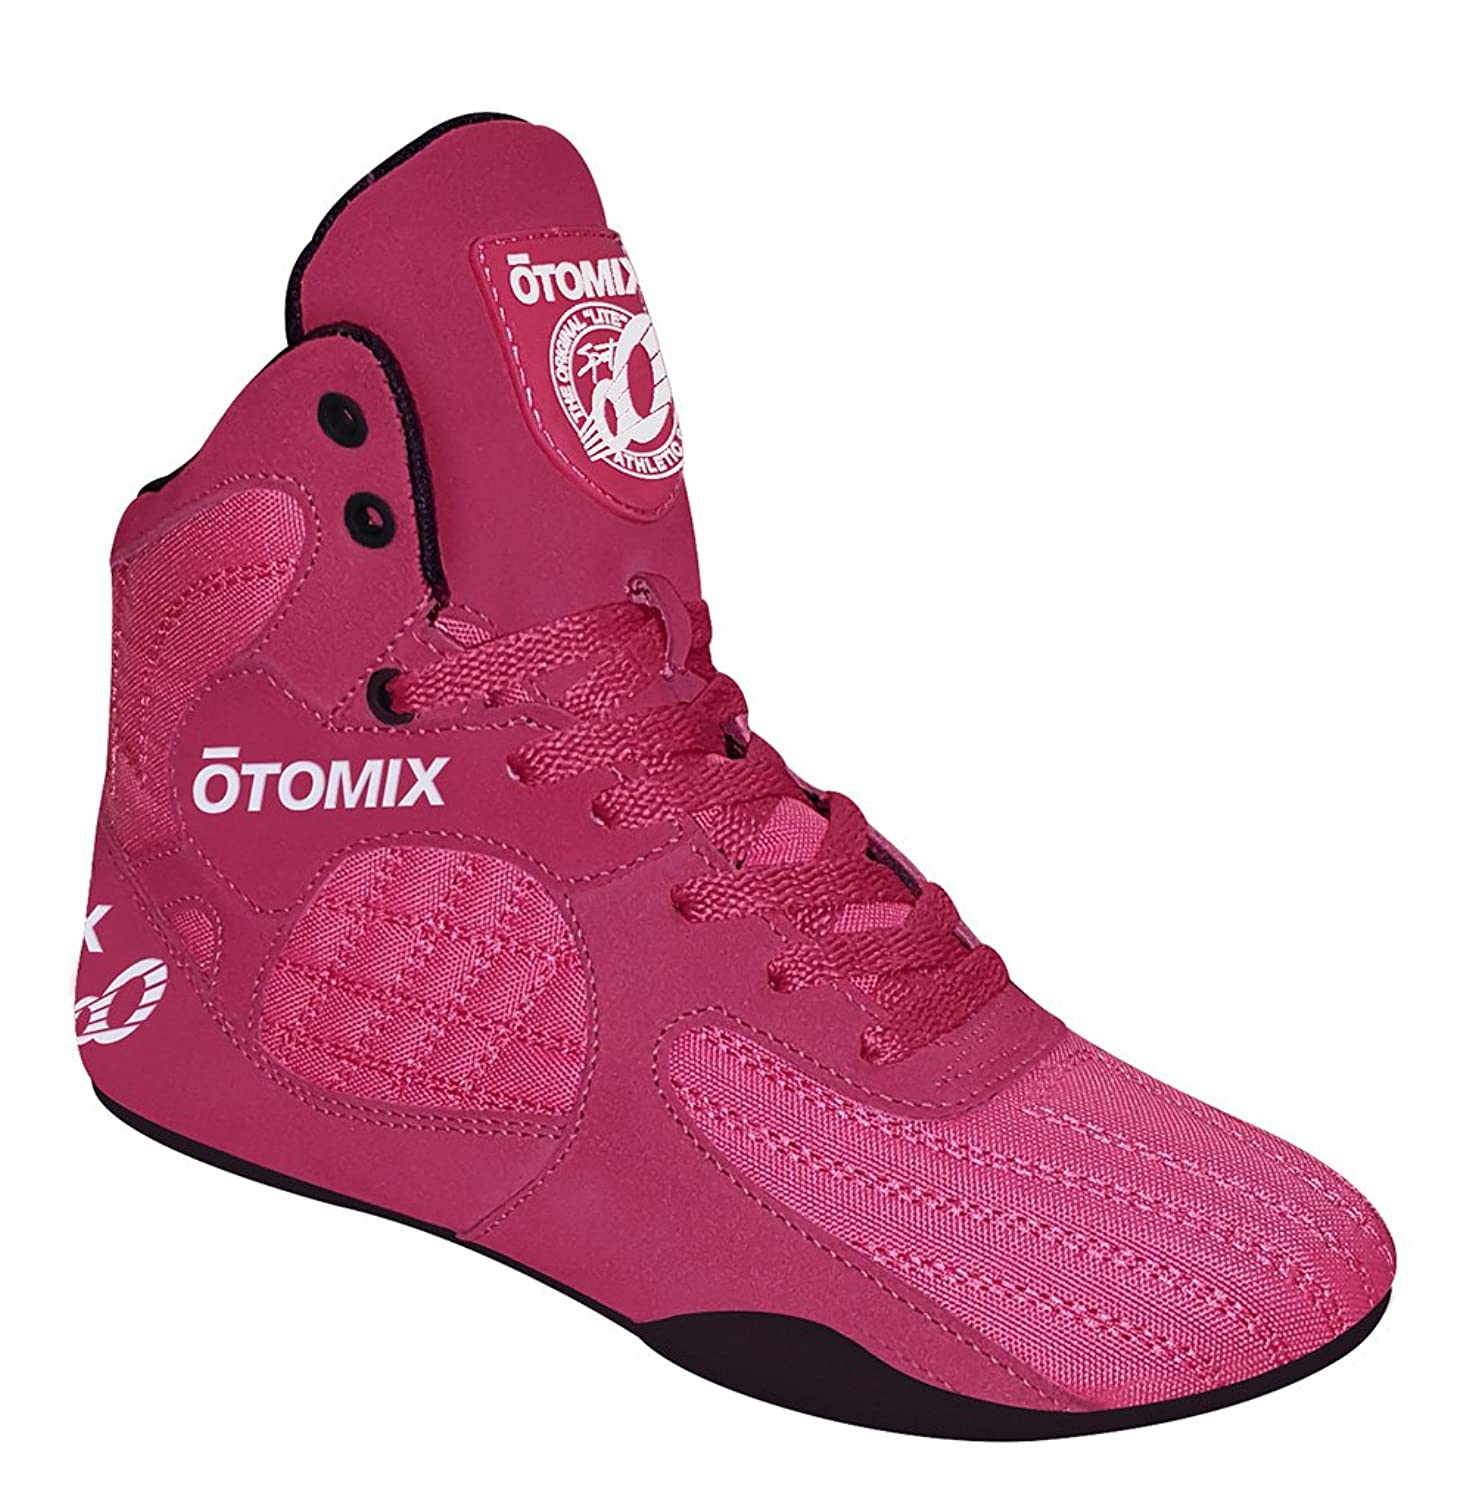 Otomix Pink & Black Stingray Escape Bodybuilding Weightlifting MMA & Boxing Shoes B071CWJTC8 8 (Female)